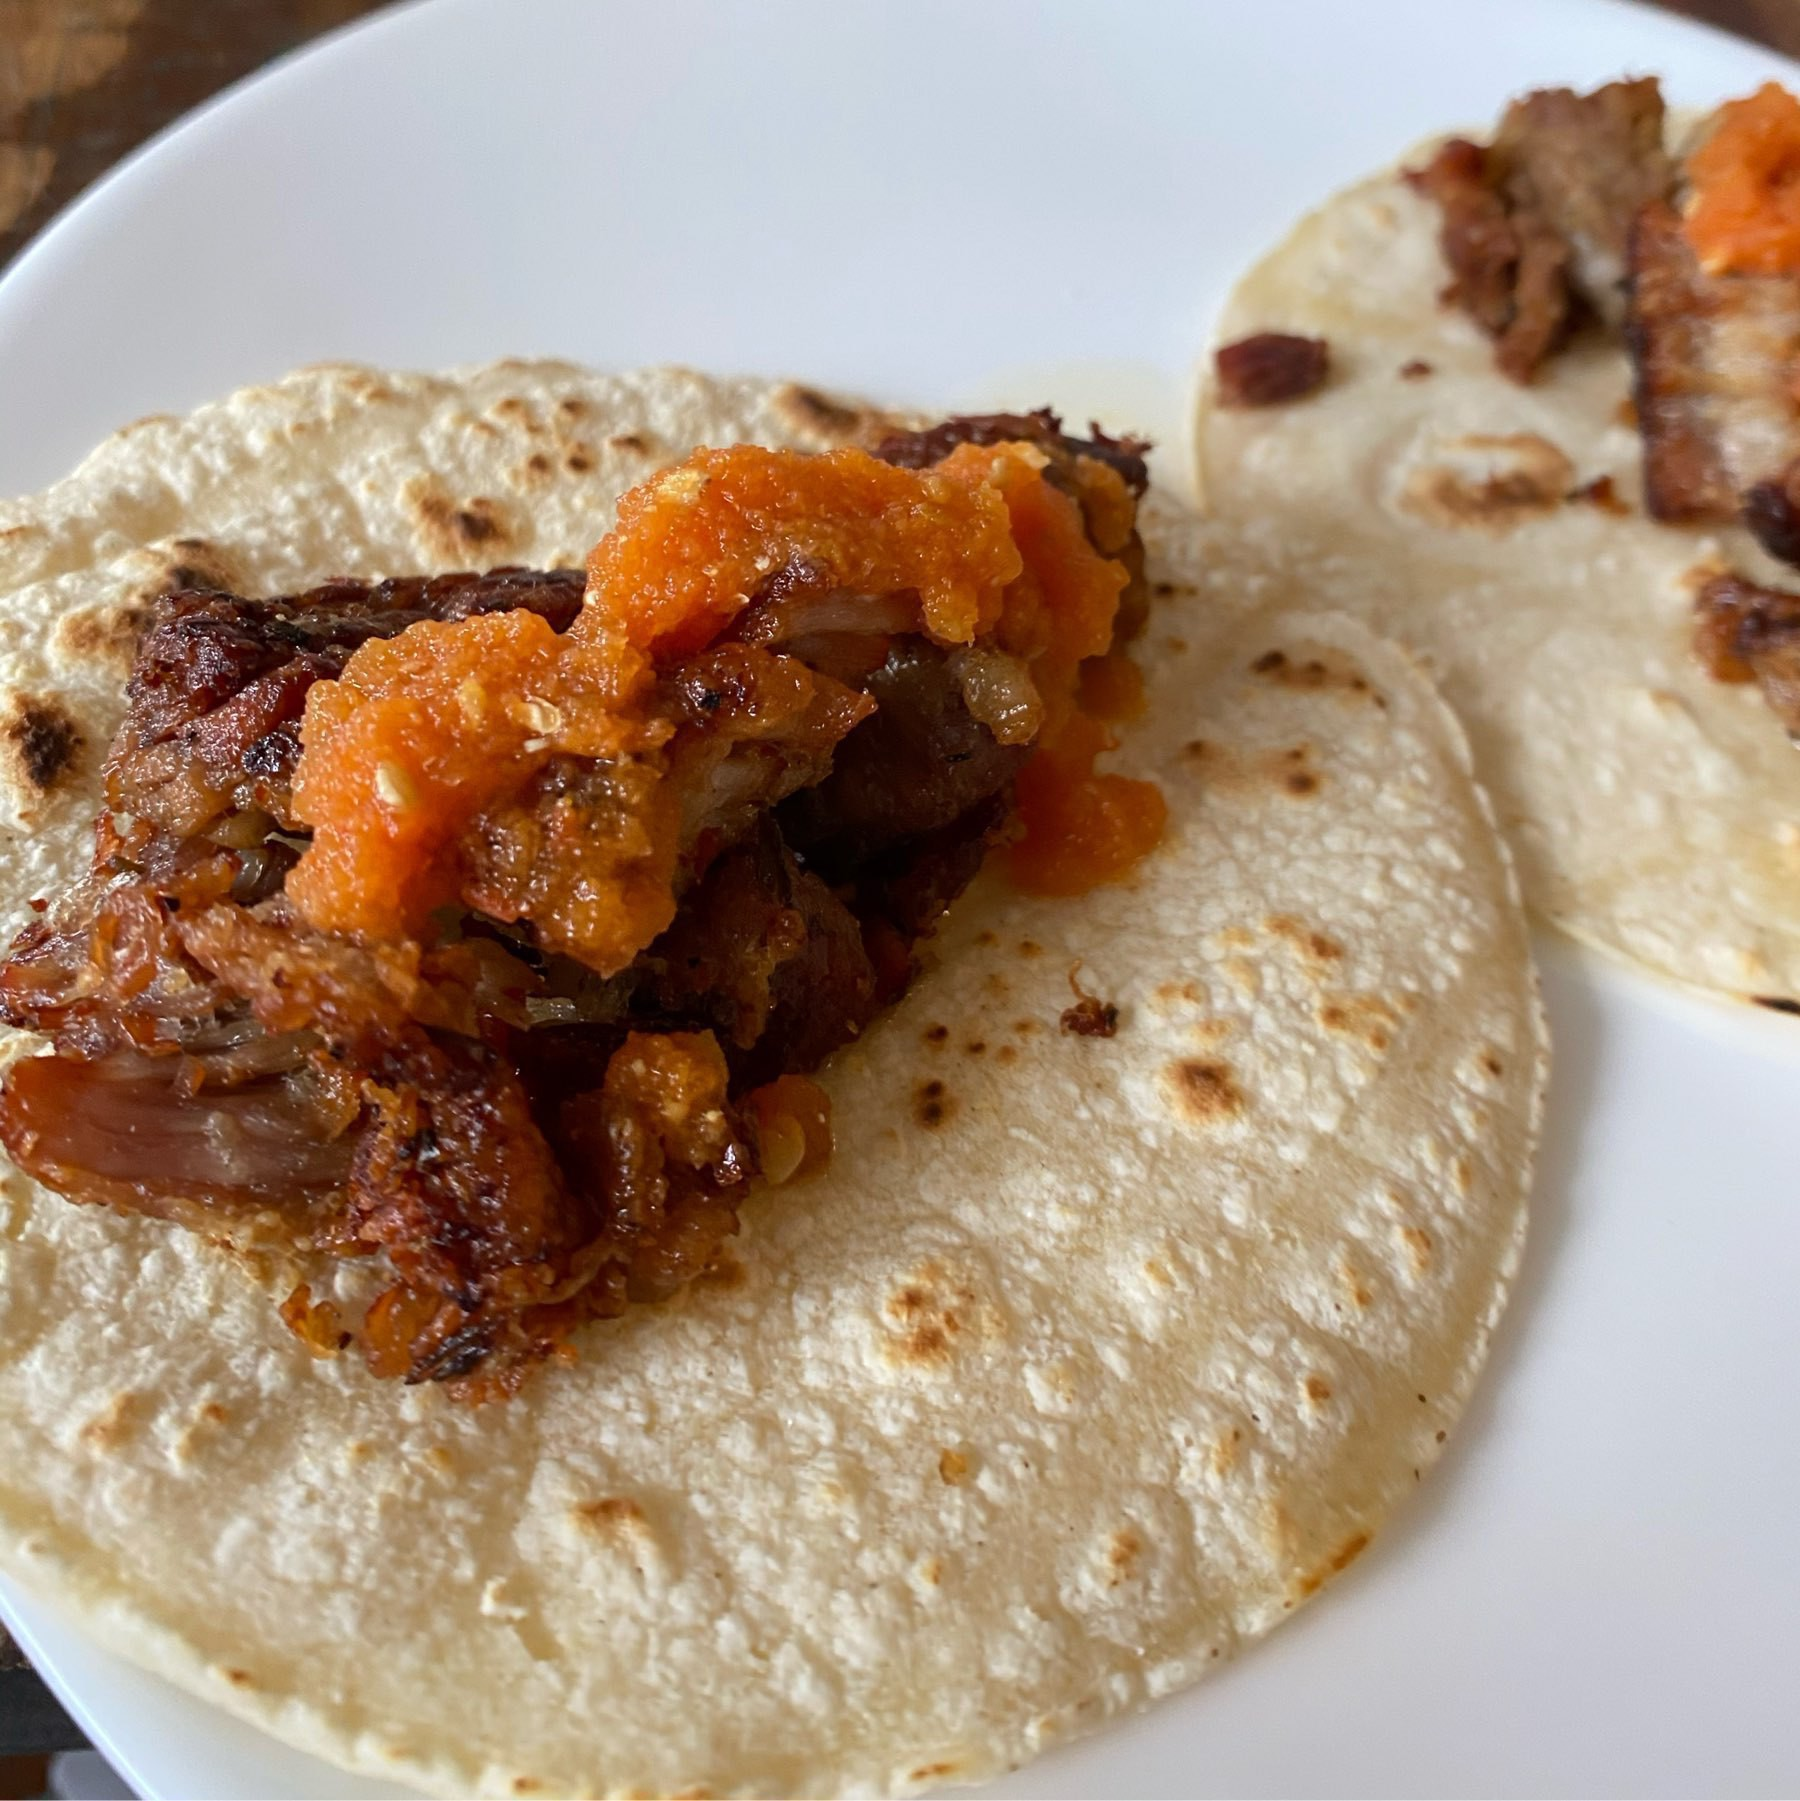 Carnitas on tortillas with red salsa